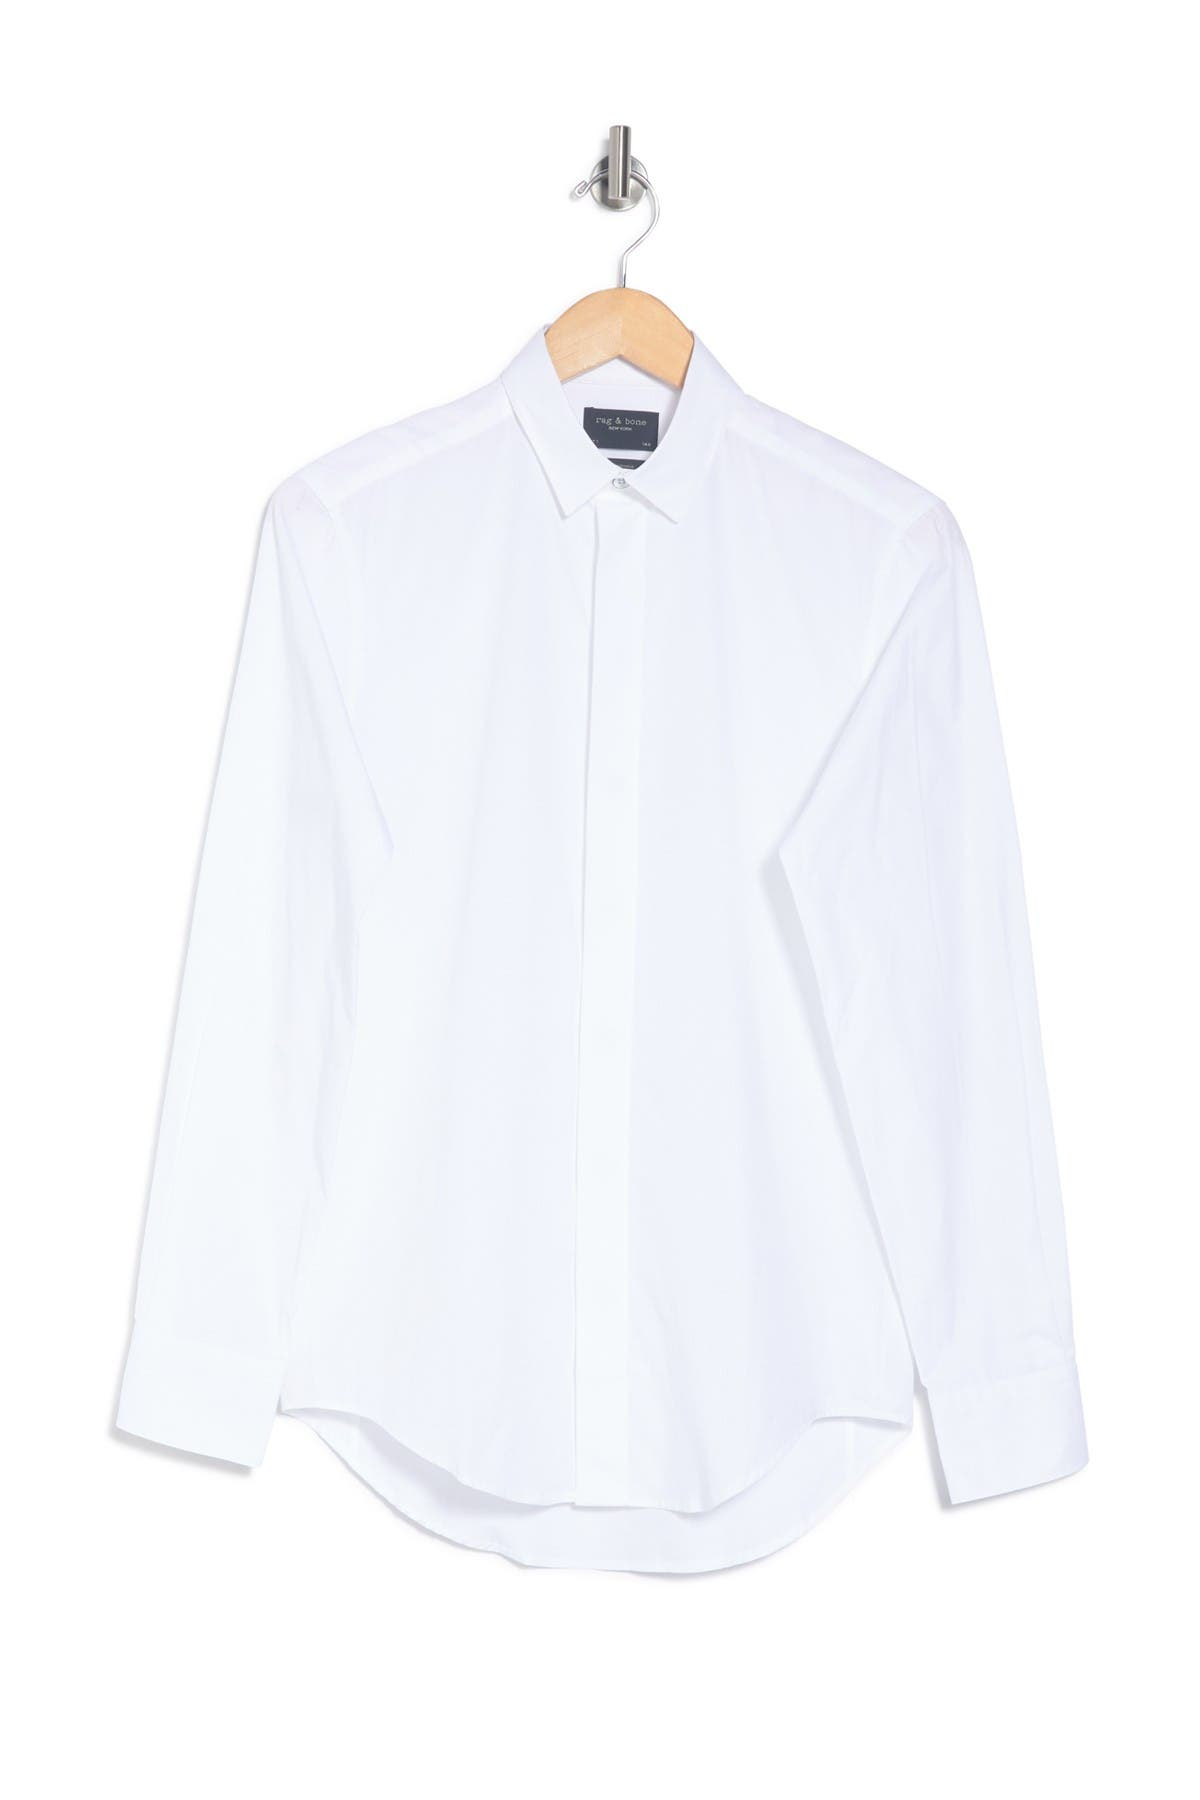 Image of Rag & Bone Solid Slim Fit Shirt